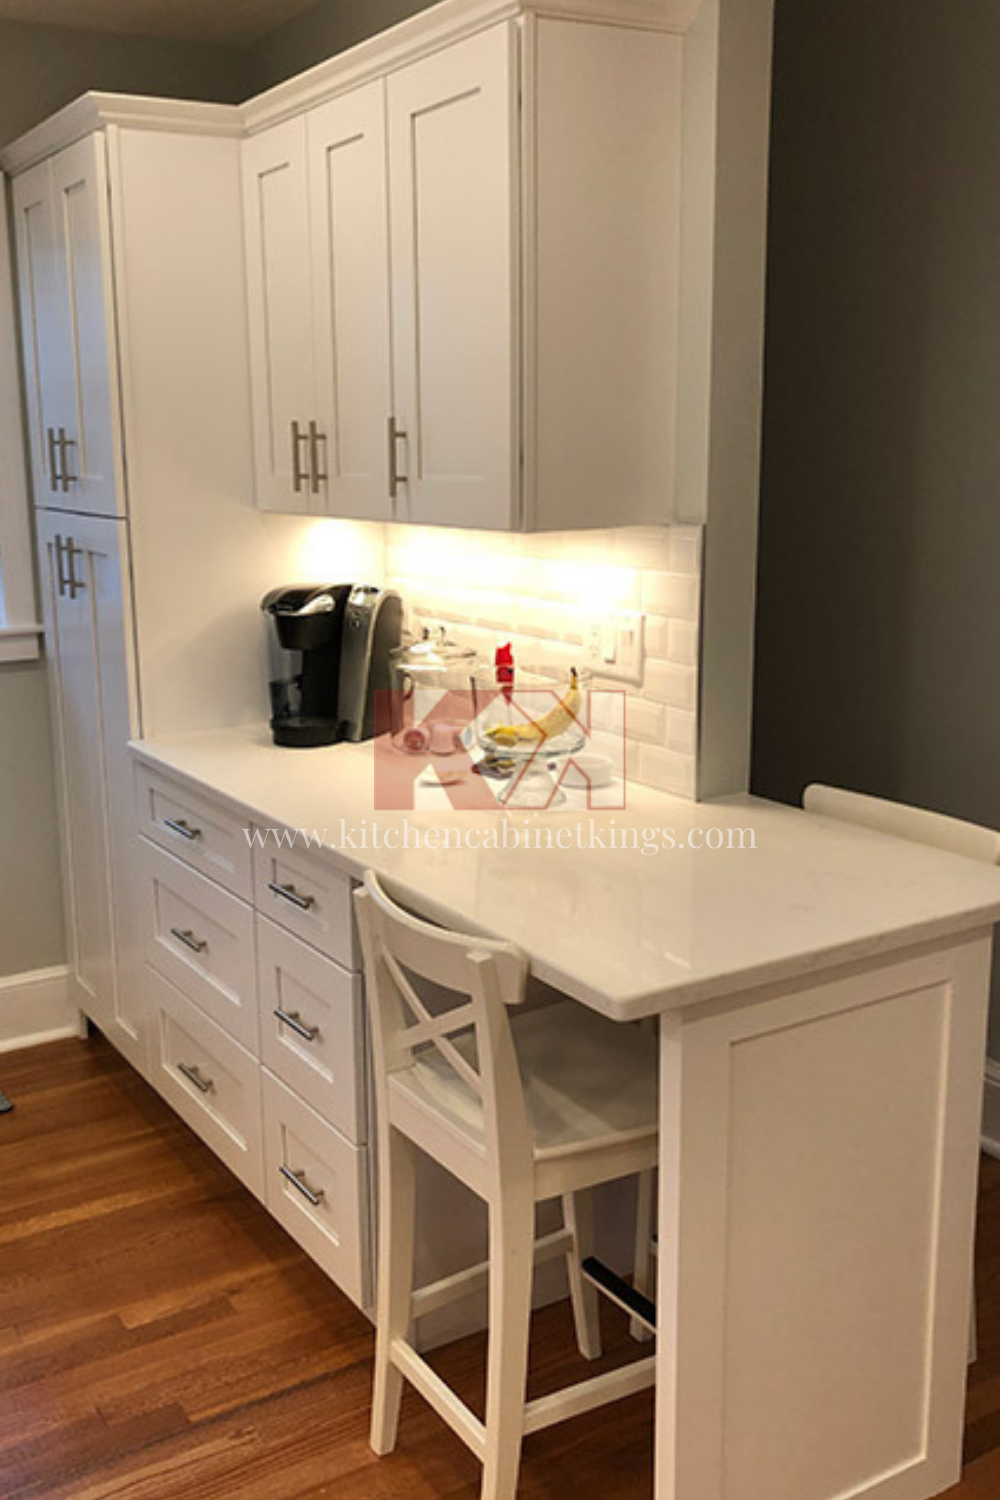 Kitchen Desk With Ice White Shaker Cabinets In 2020 Assembled Kitchen Cabinets Kitchen Cabinet Kings White Shaker Cabinets